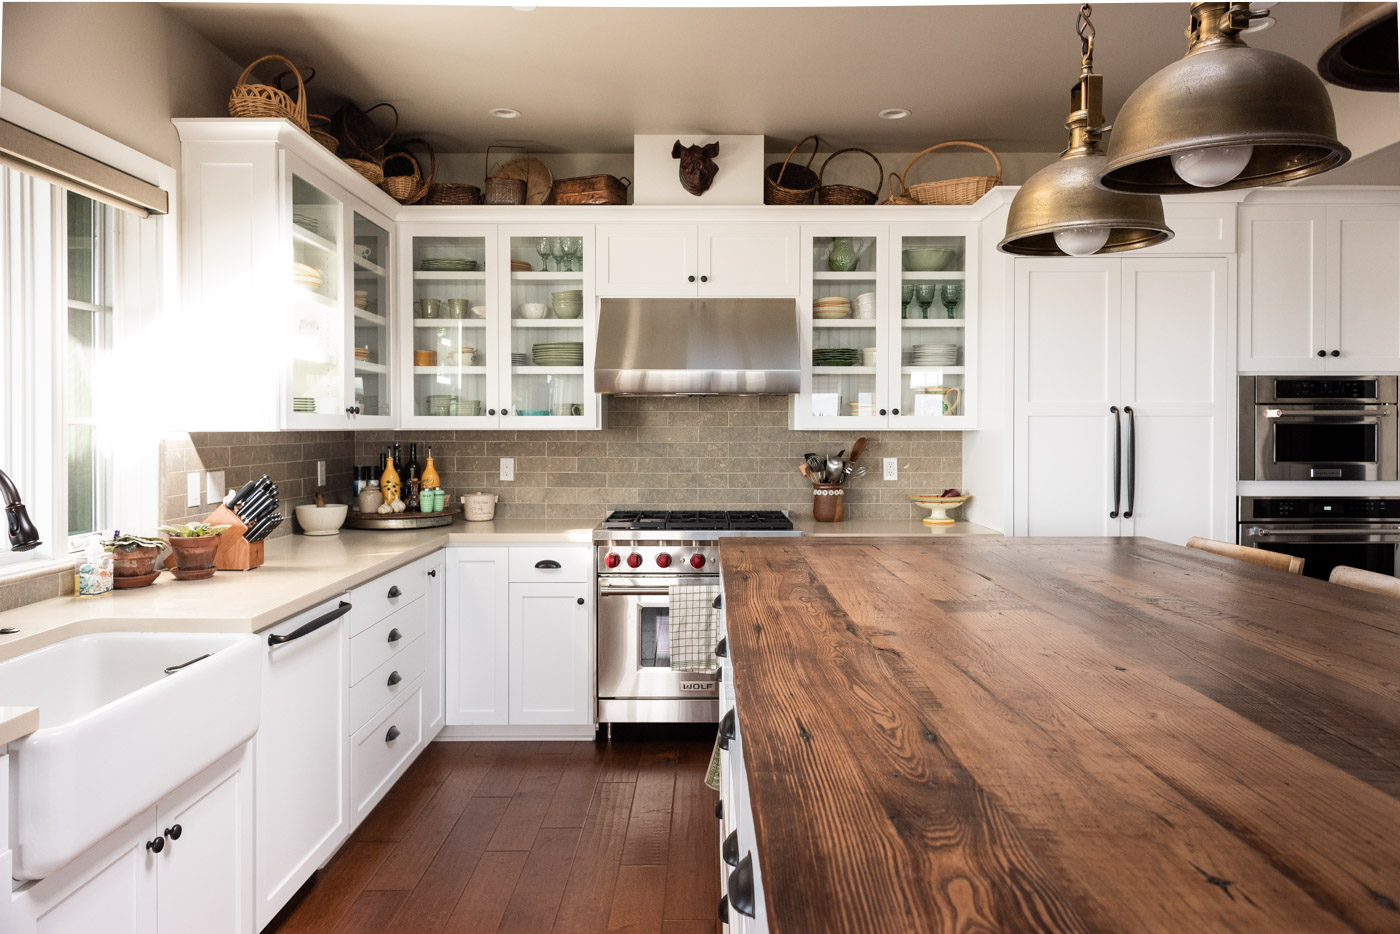 Coastal Craftsman kitchen with custom white painted shaker cabinets and wood butcher block counter top